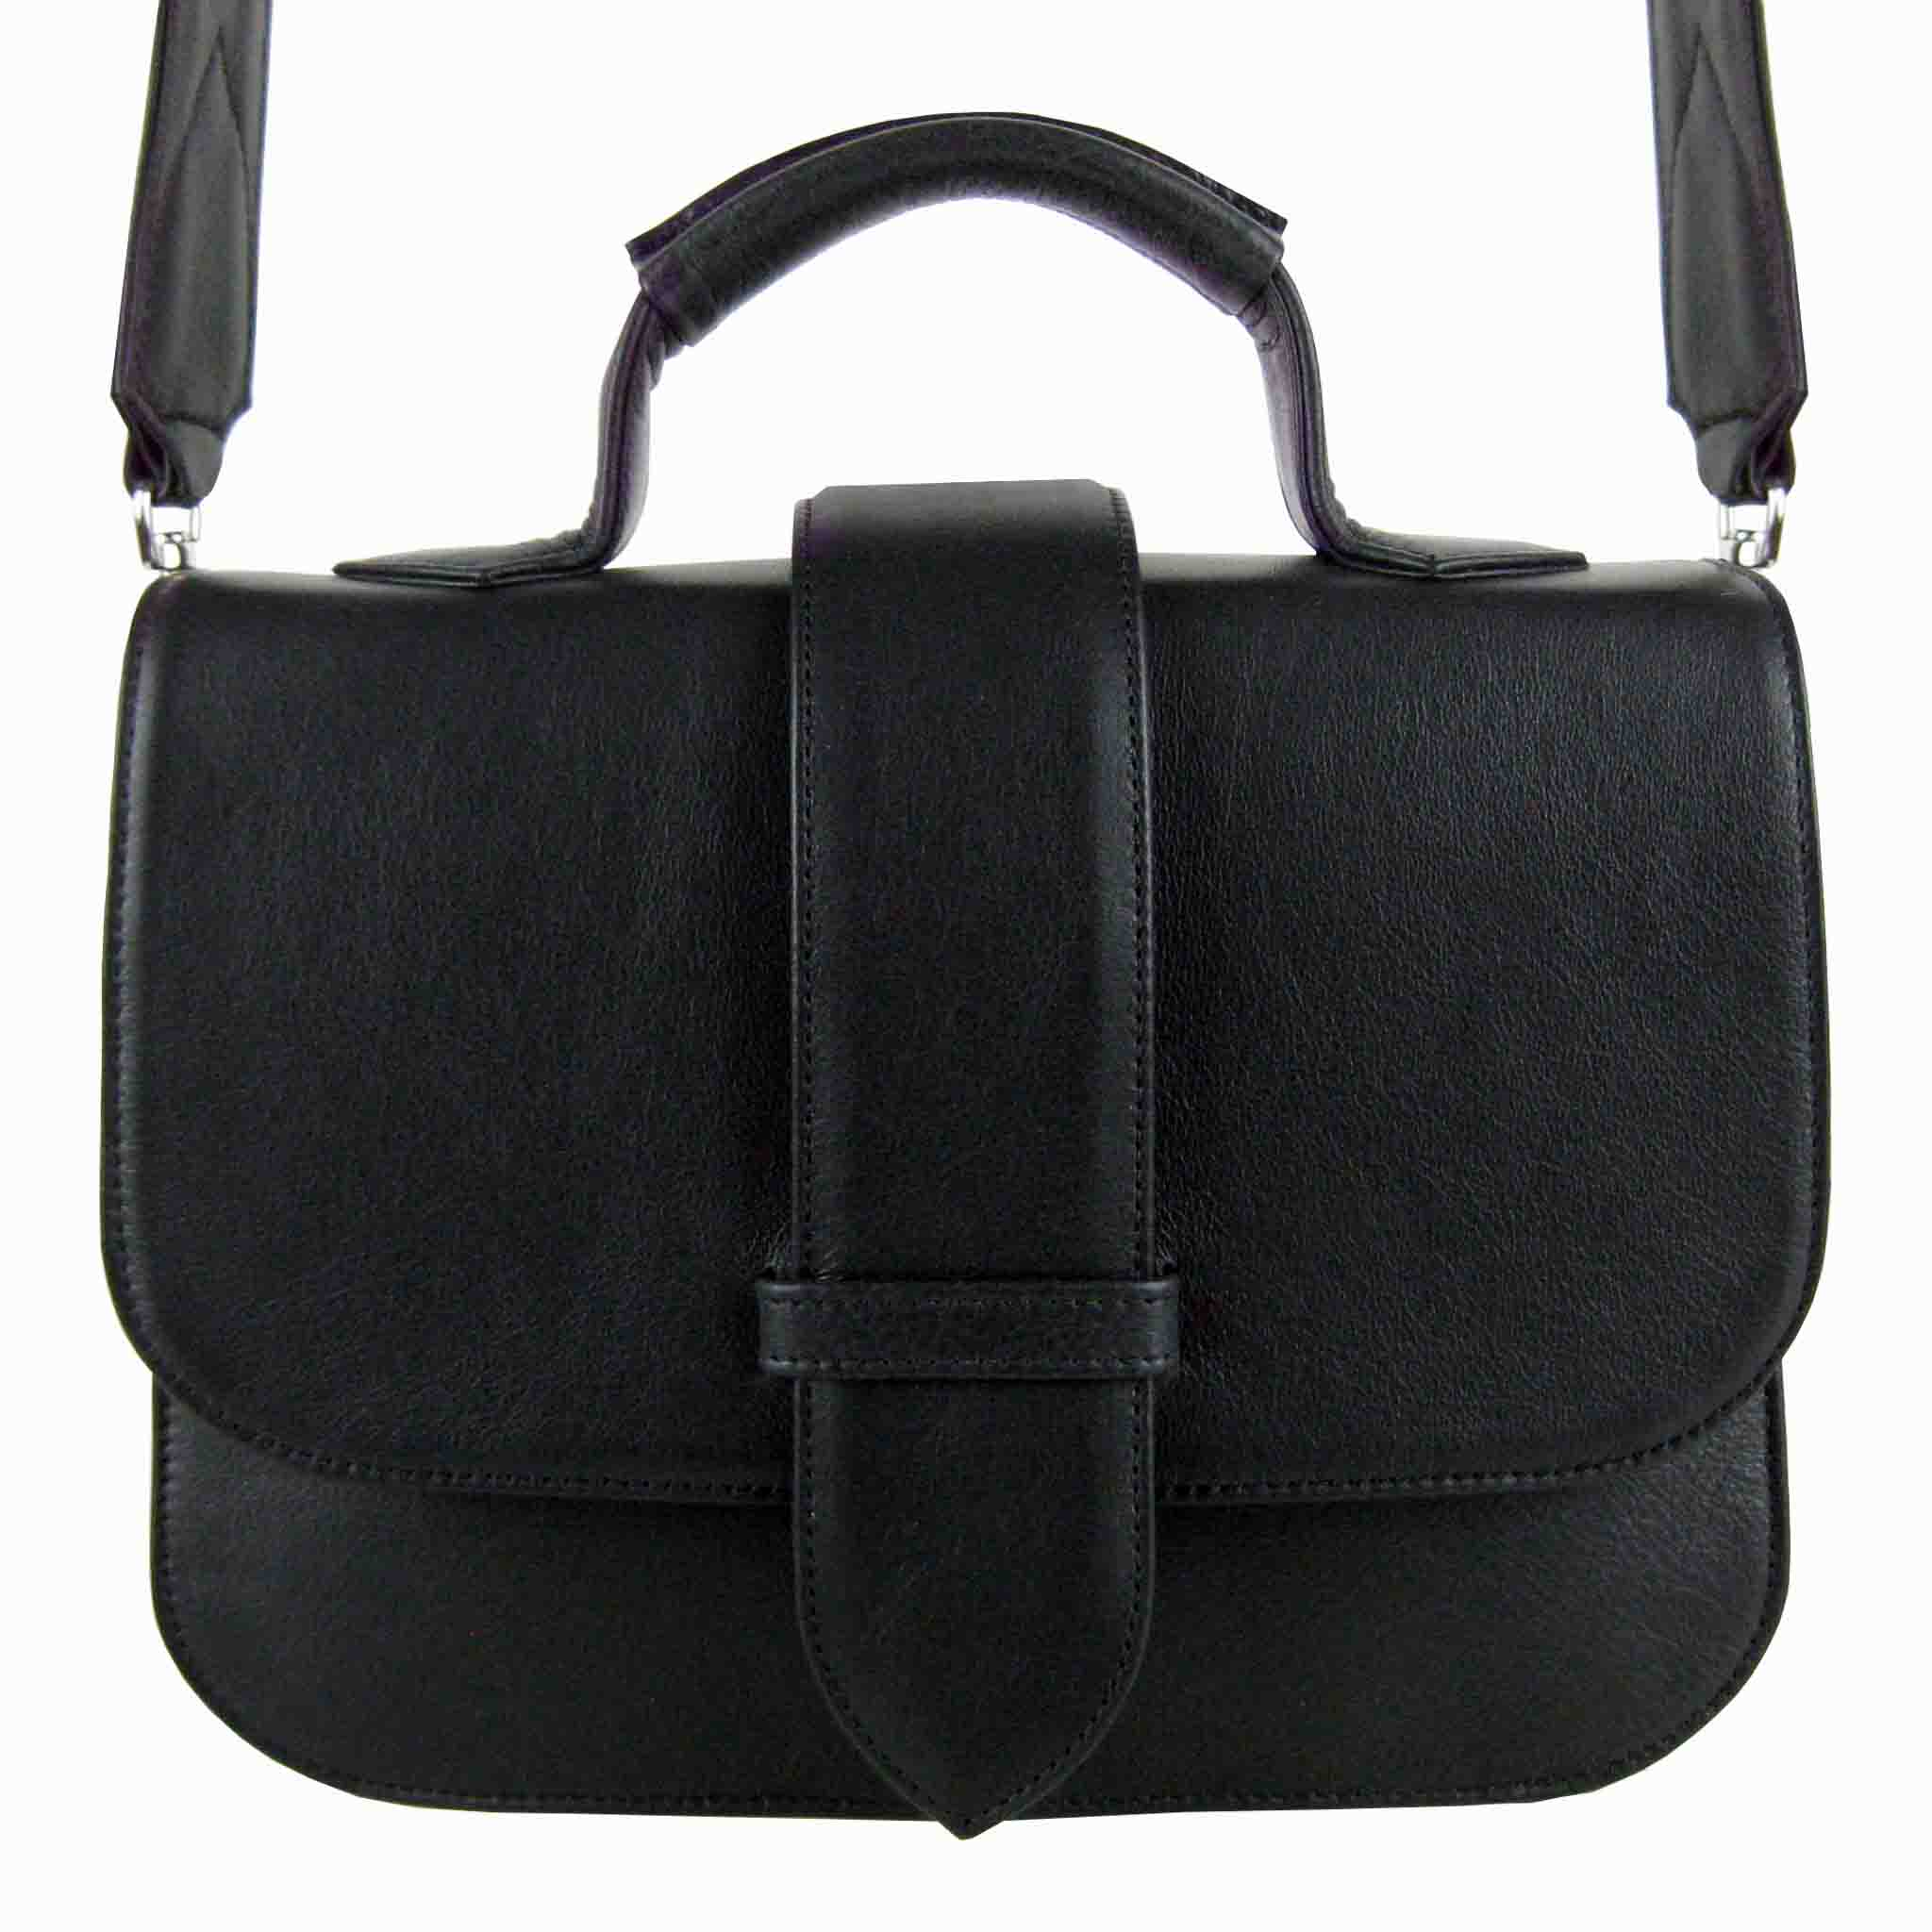 WOMEN'S SINGLE FLAP LEATHER CROSSBODY SCHULRANZEN BAG